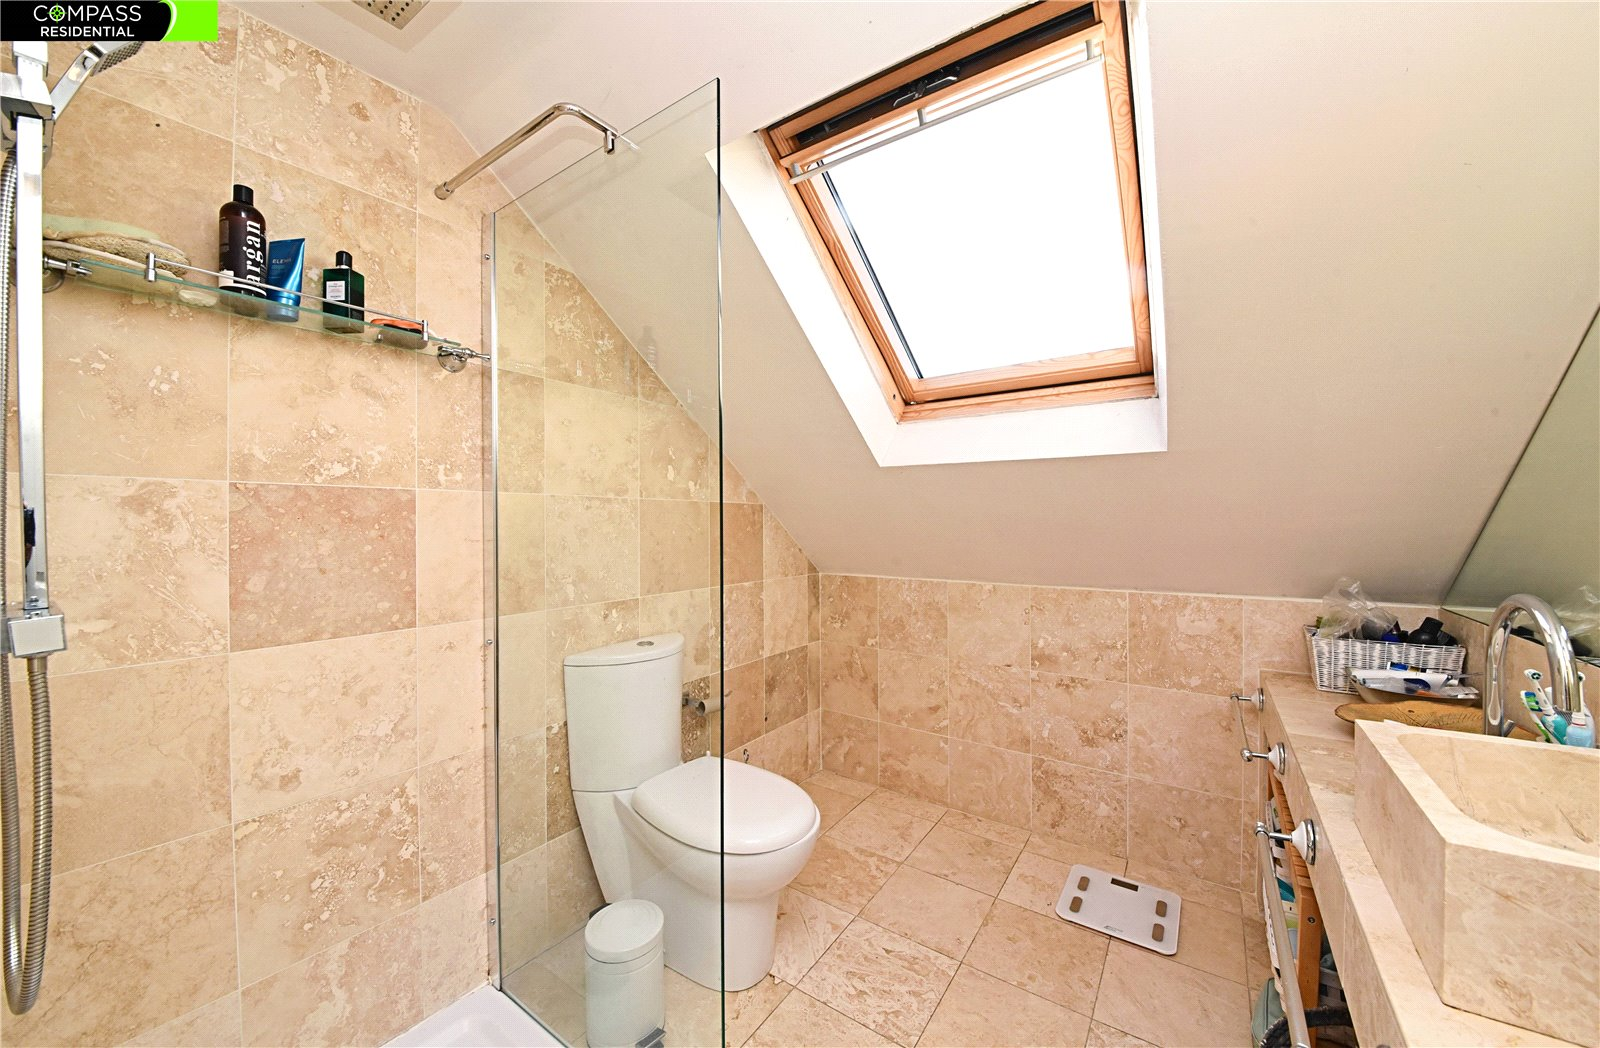 4 bed house for sale in Whetstone, N20 0HJ  - Property Image 7